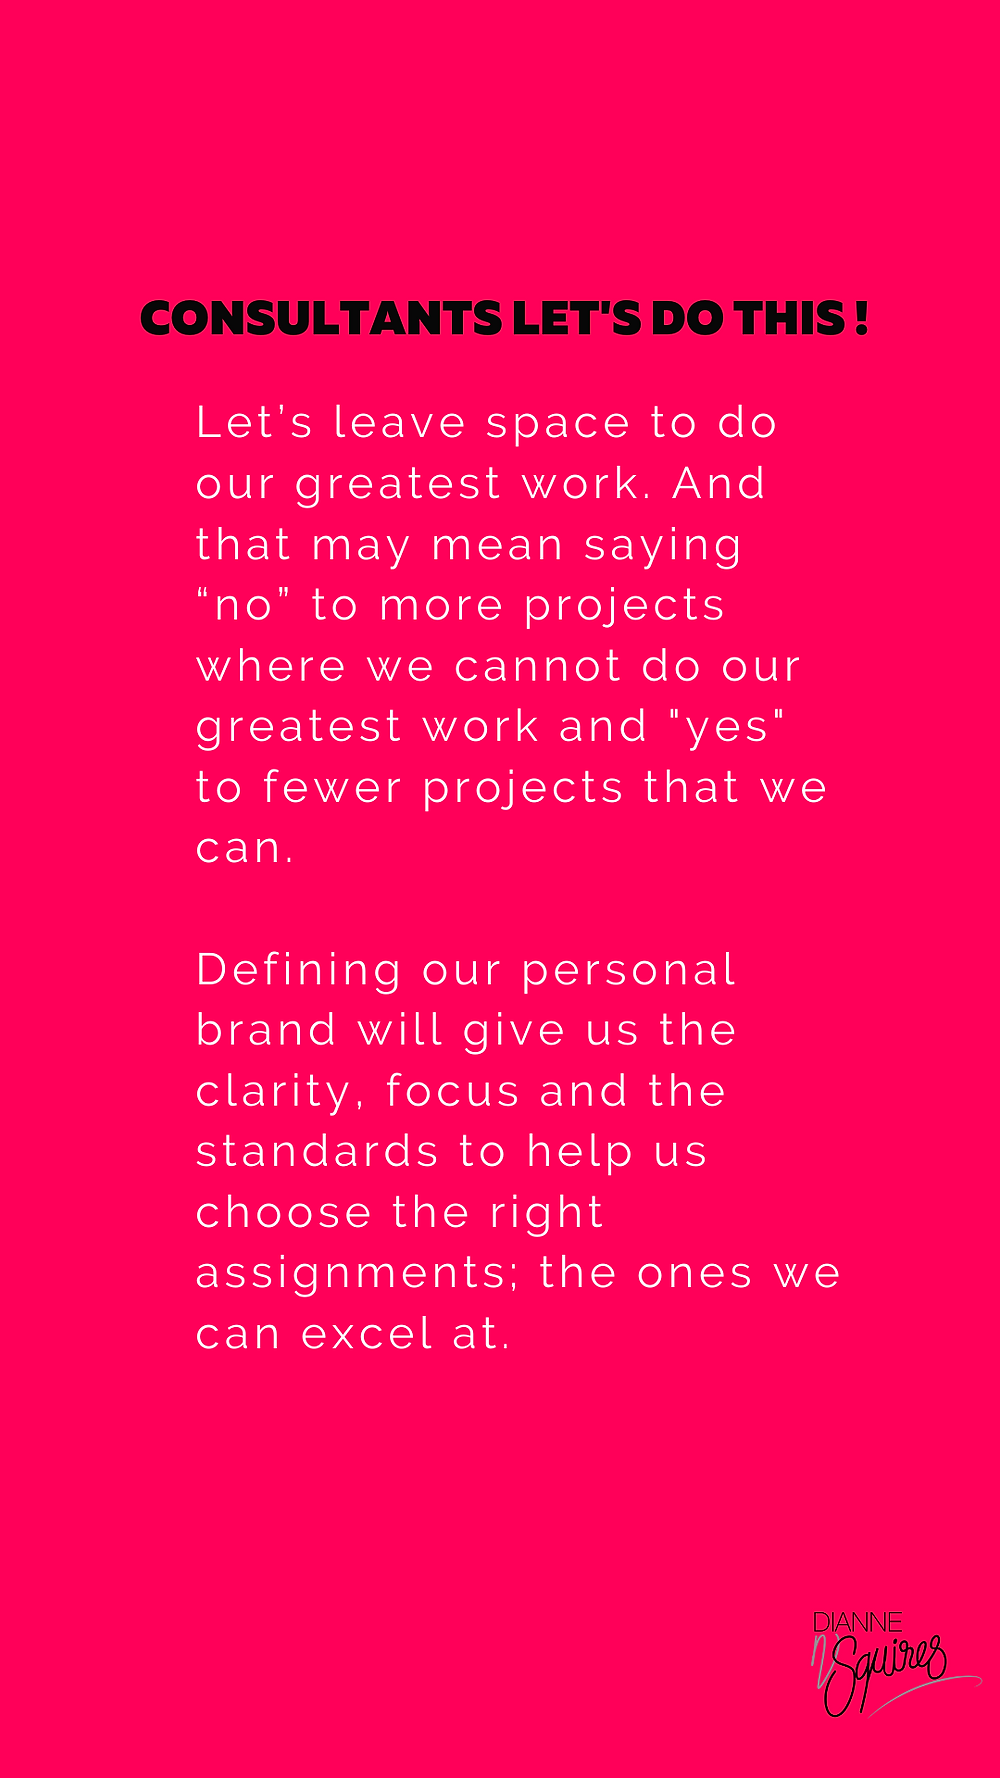 Define your personal brand to have the clarity, focus and standards to do your greatest work and say no to what you won't excel at.